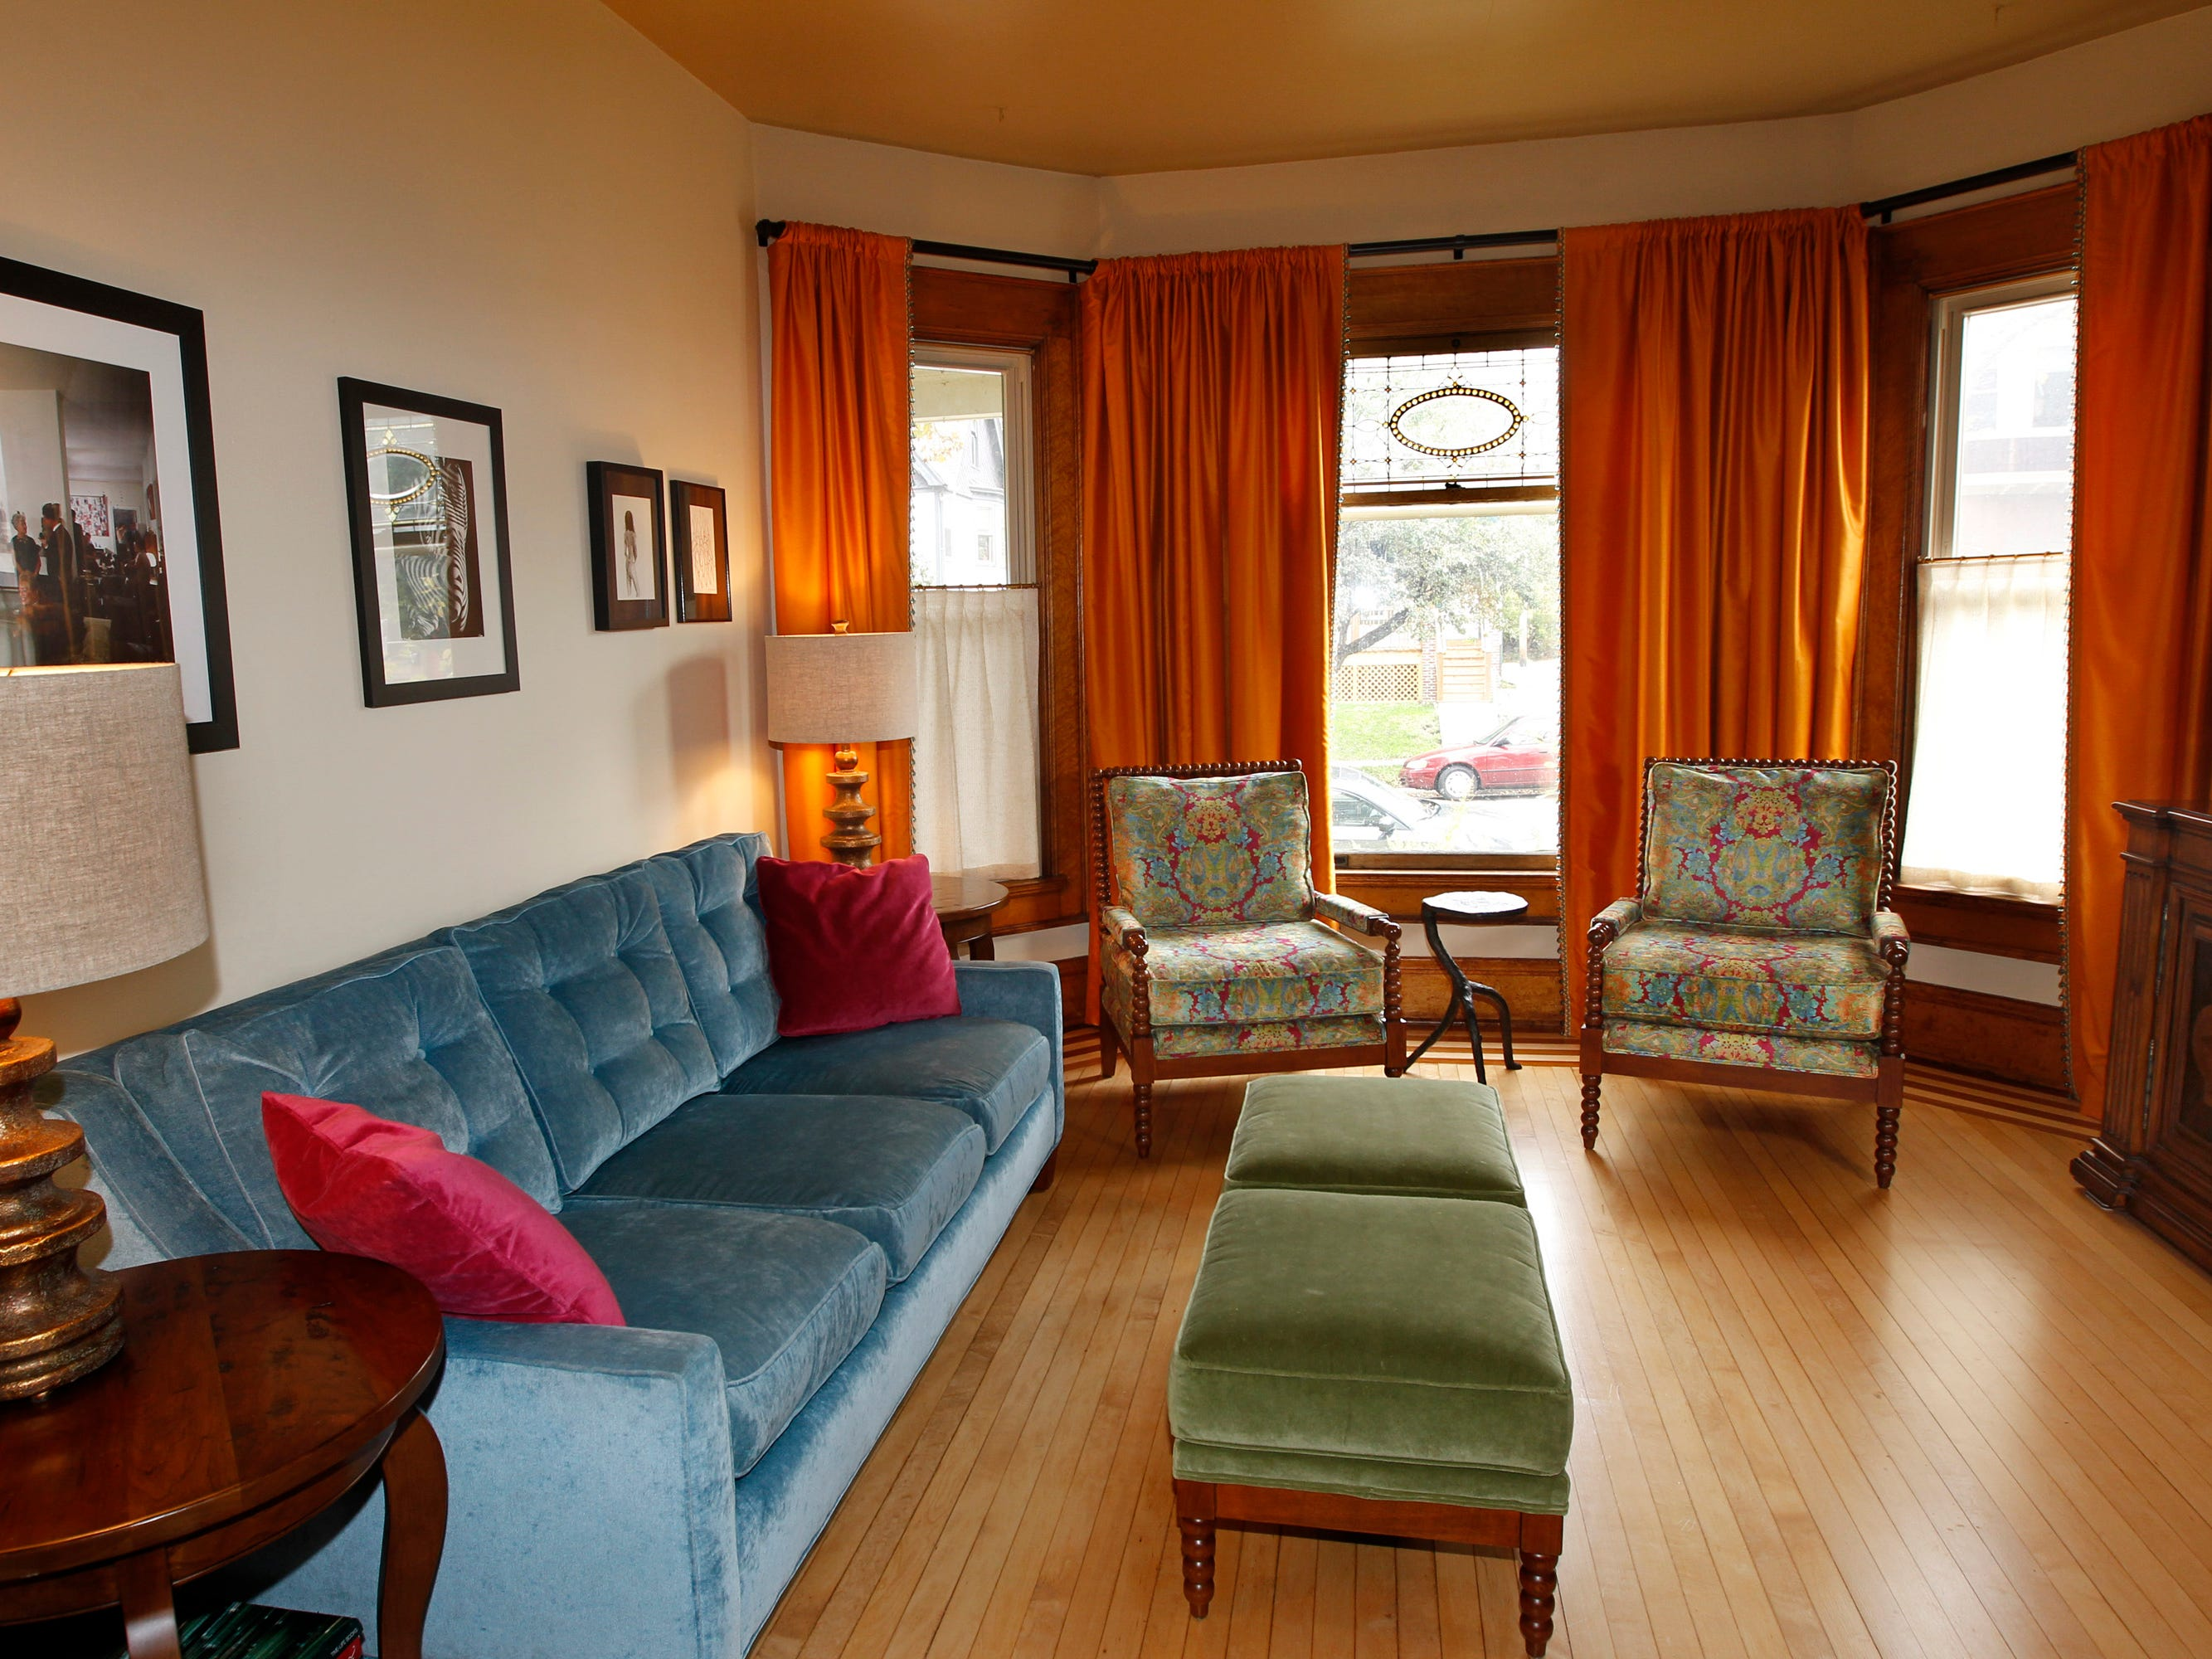 Mara Duckens and Kevin Kriehn had the two chairs near the window custom-built. The colors in the fabric are also seen in the sofa, ottomans and curtains.